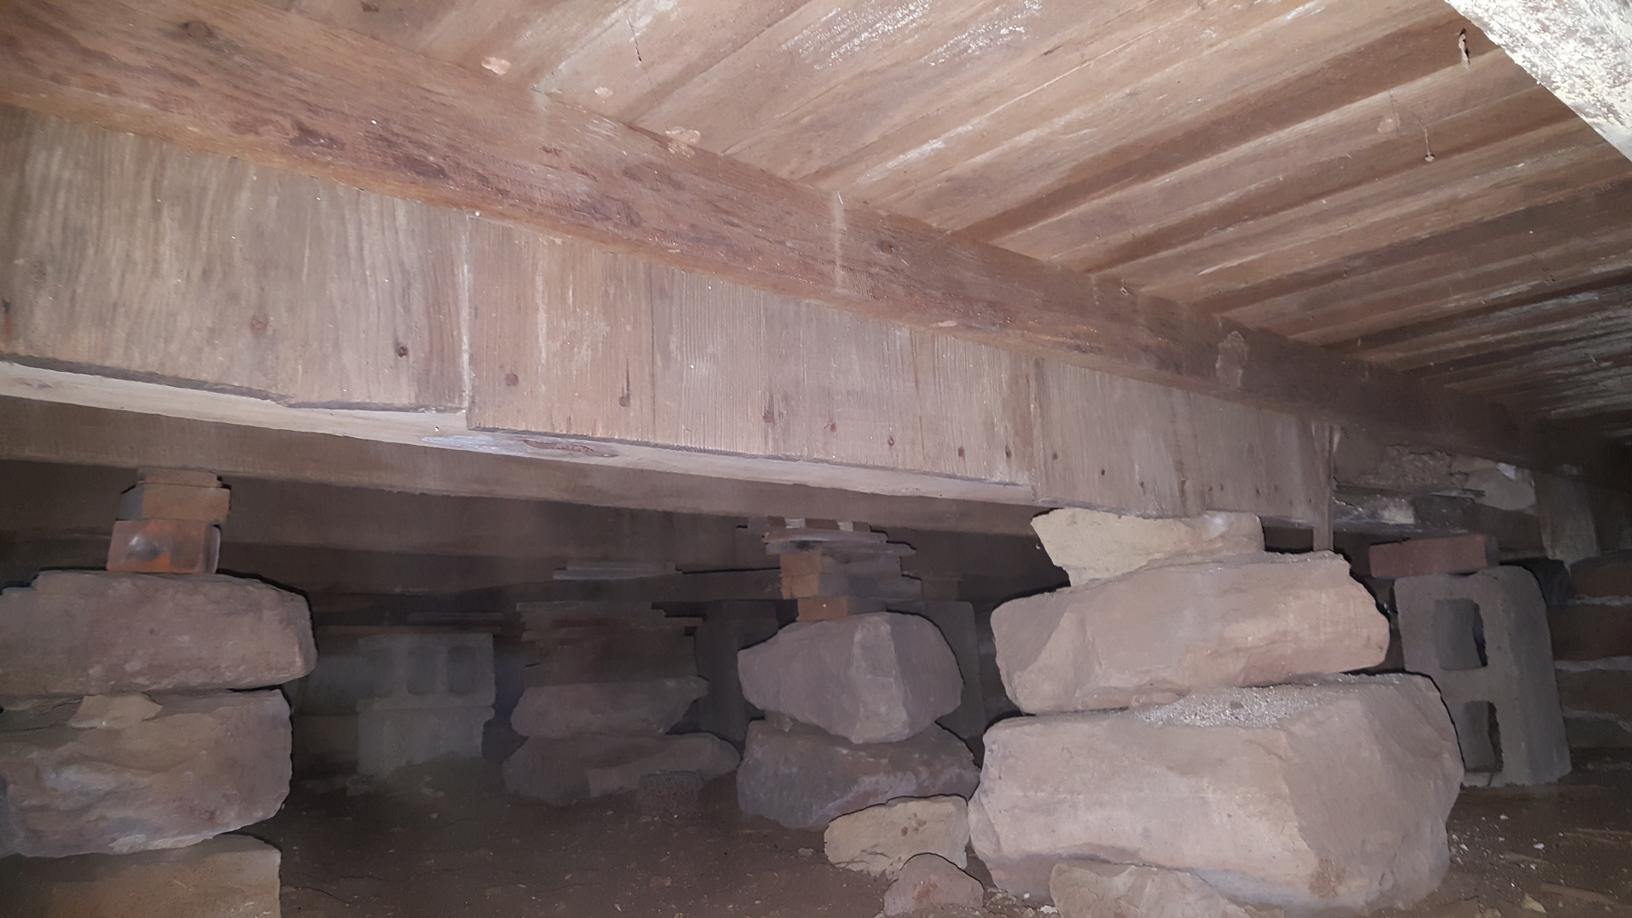 The original floor framing was supported with Stone and old concrete blocks. Because the foundations footing as never set properly the floor was very uneven upstairs.